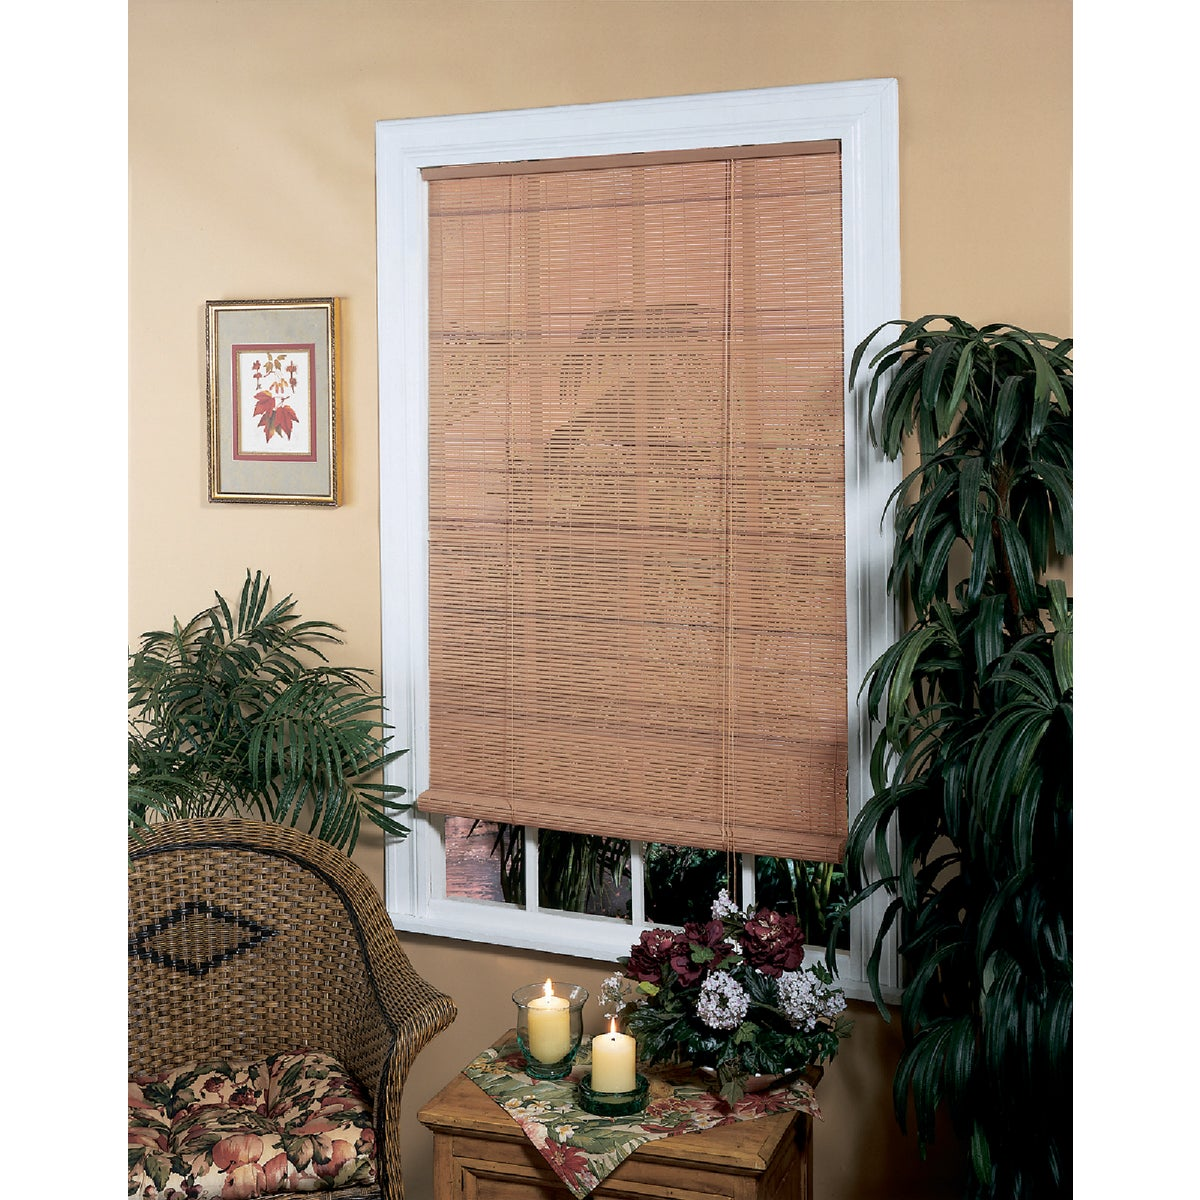 72X72 WDGN ROLL-UP BLIND